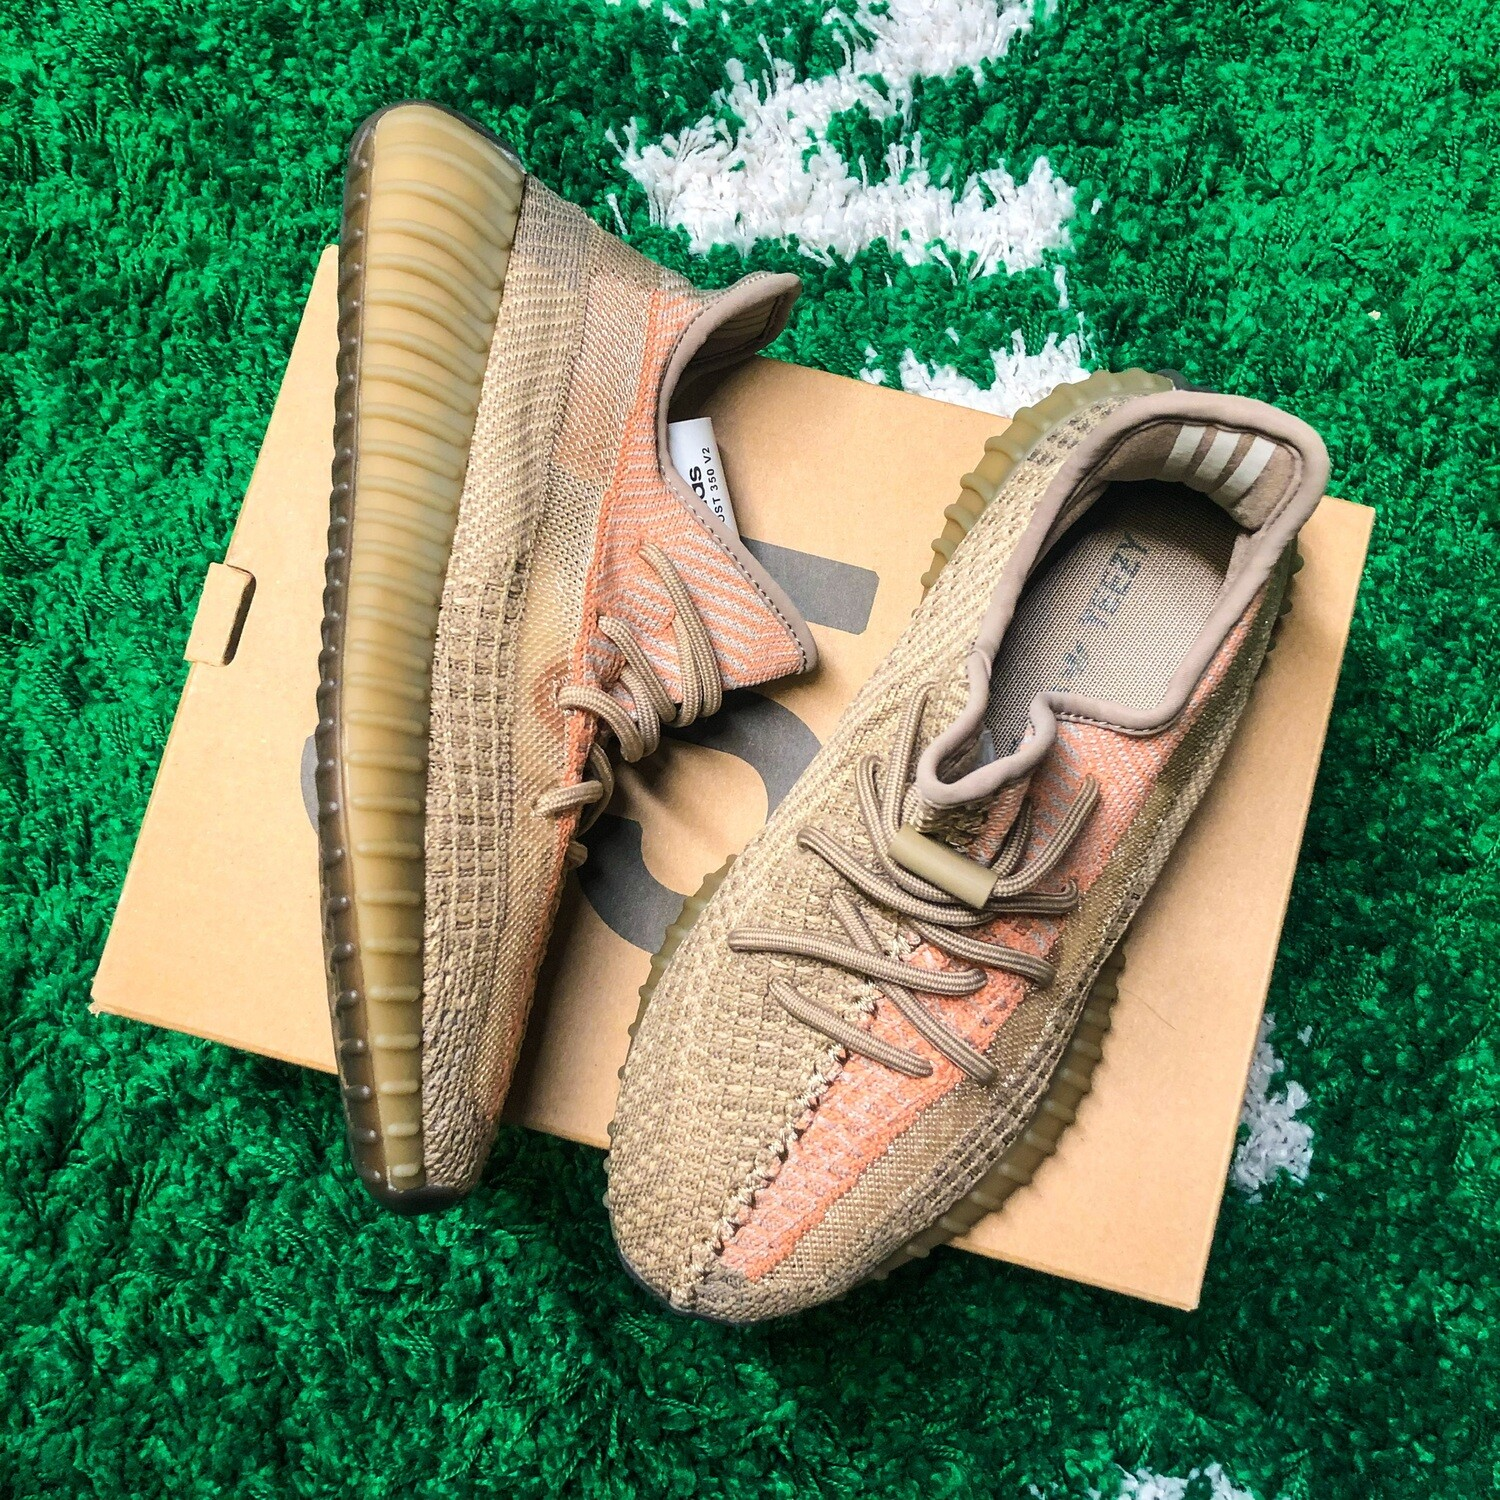 adidas Yeezy Boost 350 V2 Sand Taupe Size 8